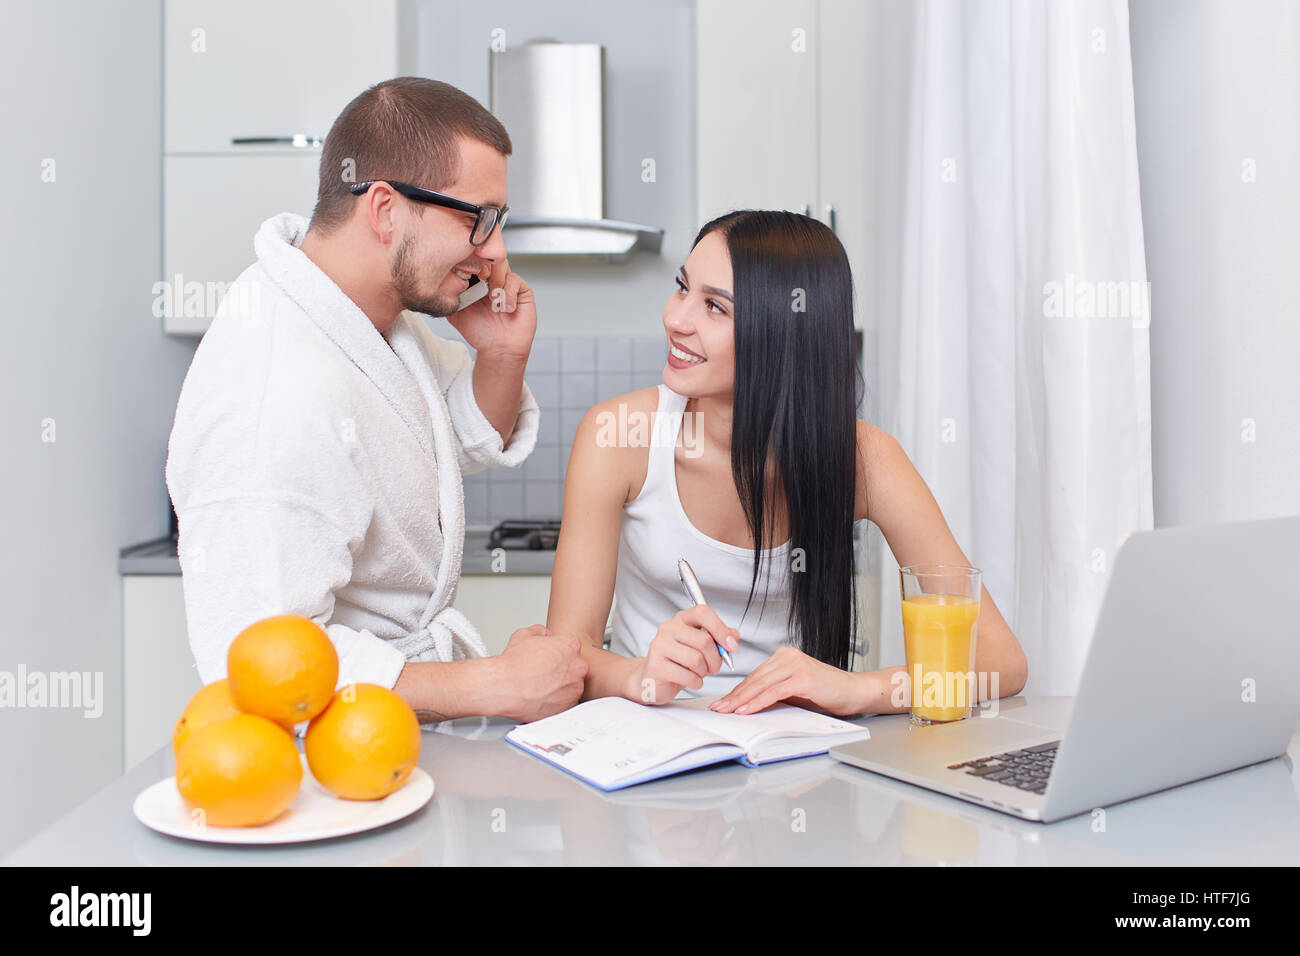 Brunette woman with long hair holding hand on chin and seriously looking at her husband. Boyfriend in glasses and Stock Photo